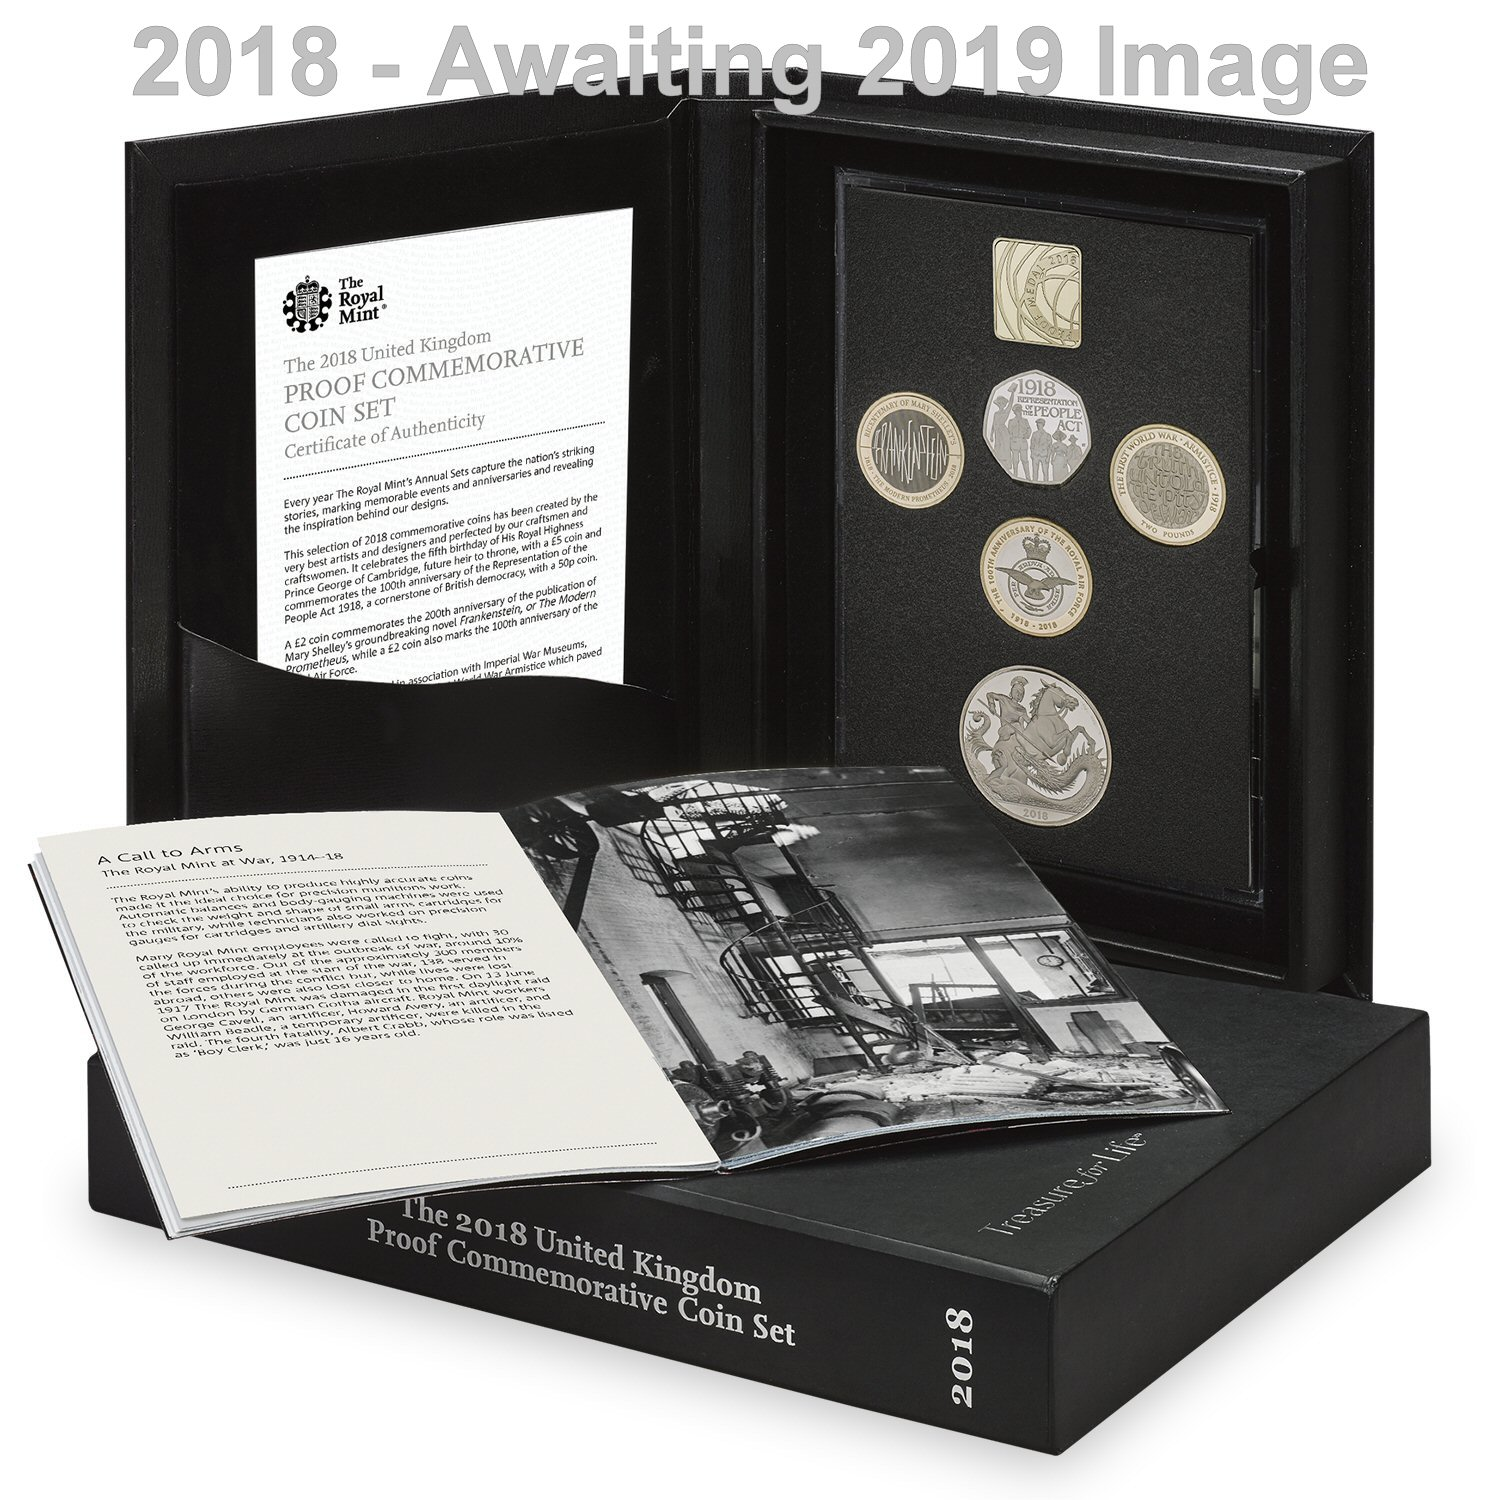 The 2019 UK Proof Commemorative Coin Set